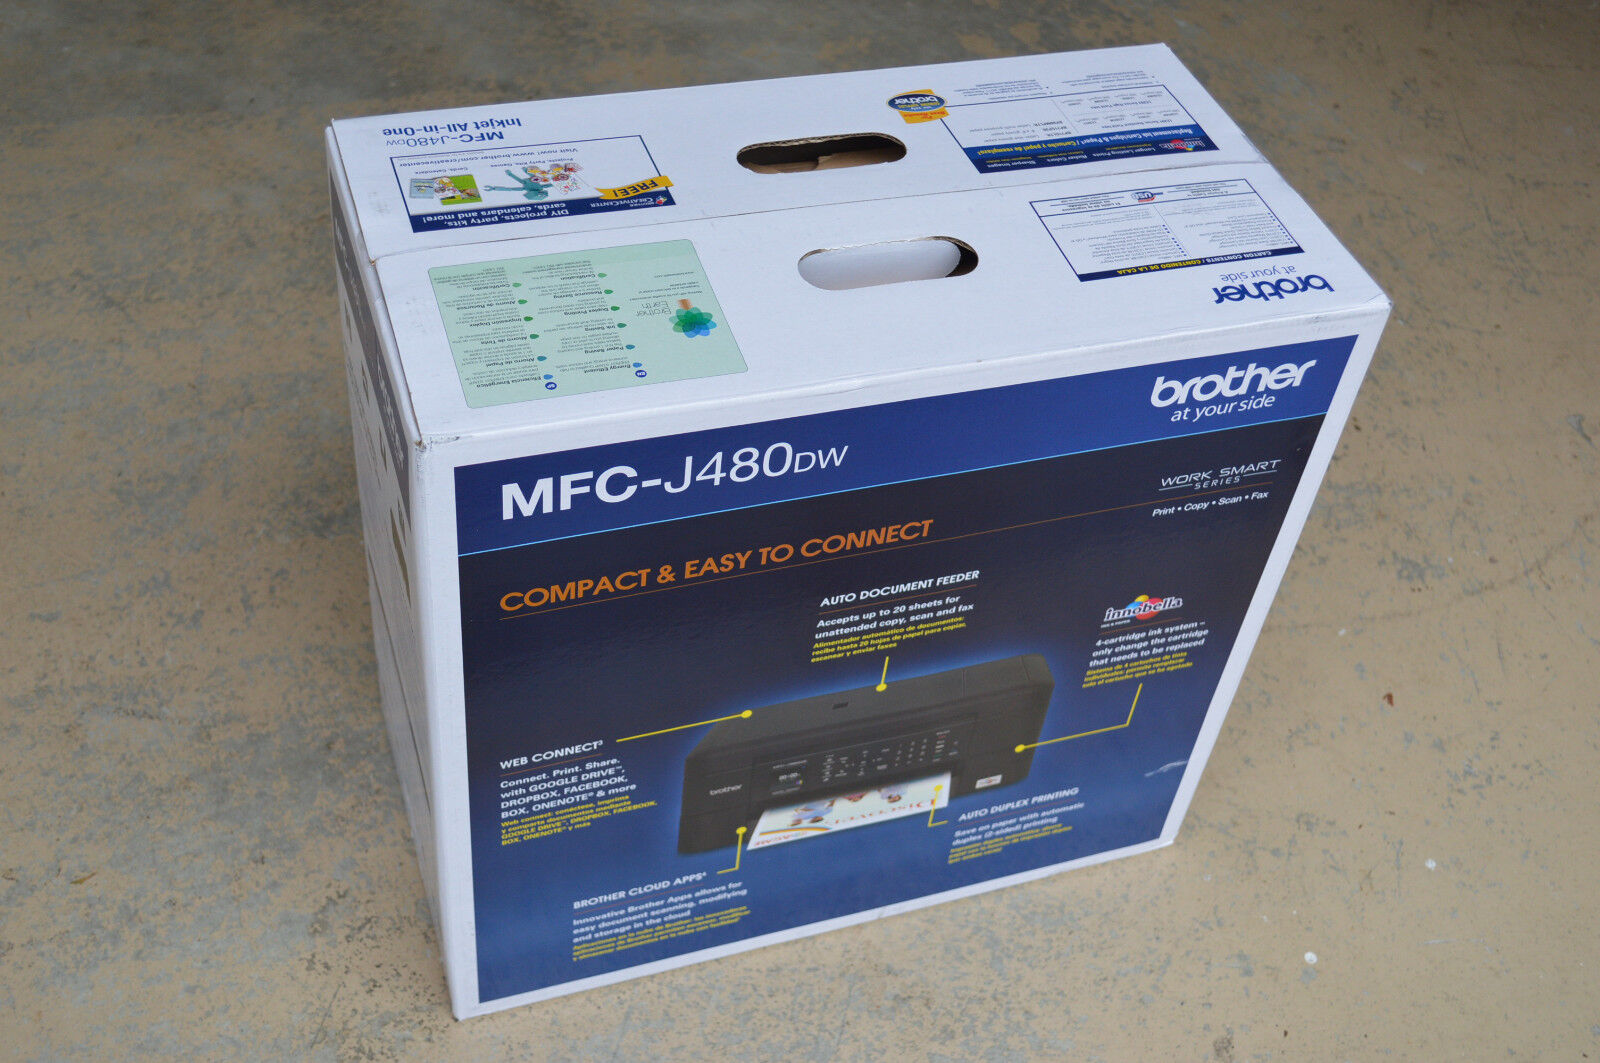 Brother MFC-J480dw Wireless Color Inkjet All-In-One Printer Local Pickup Only